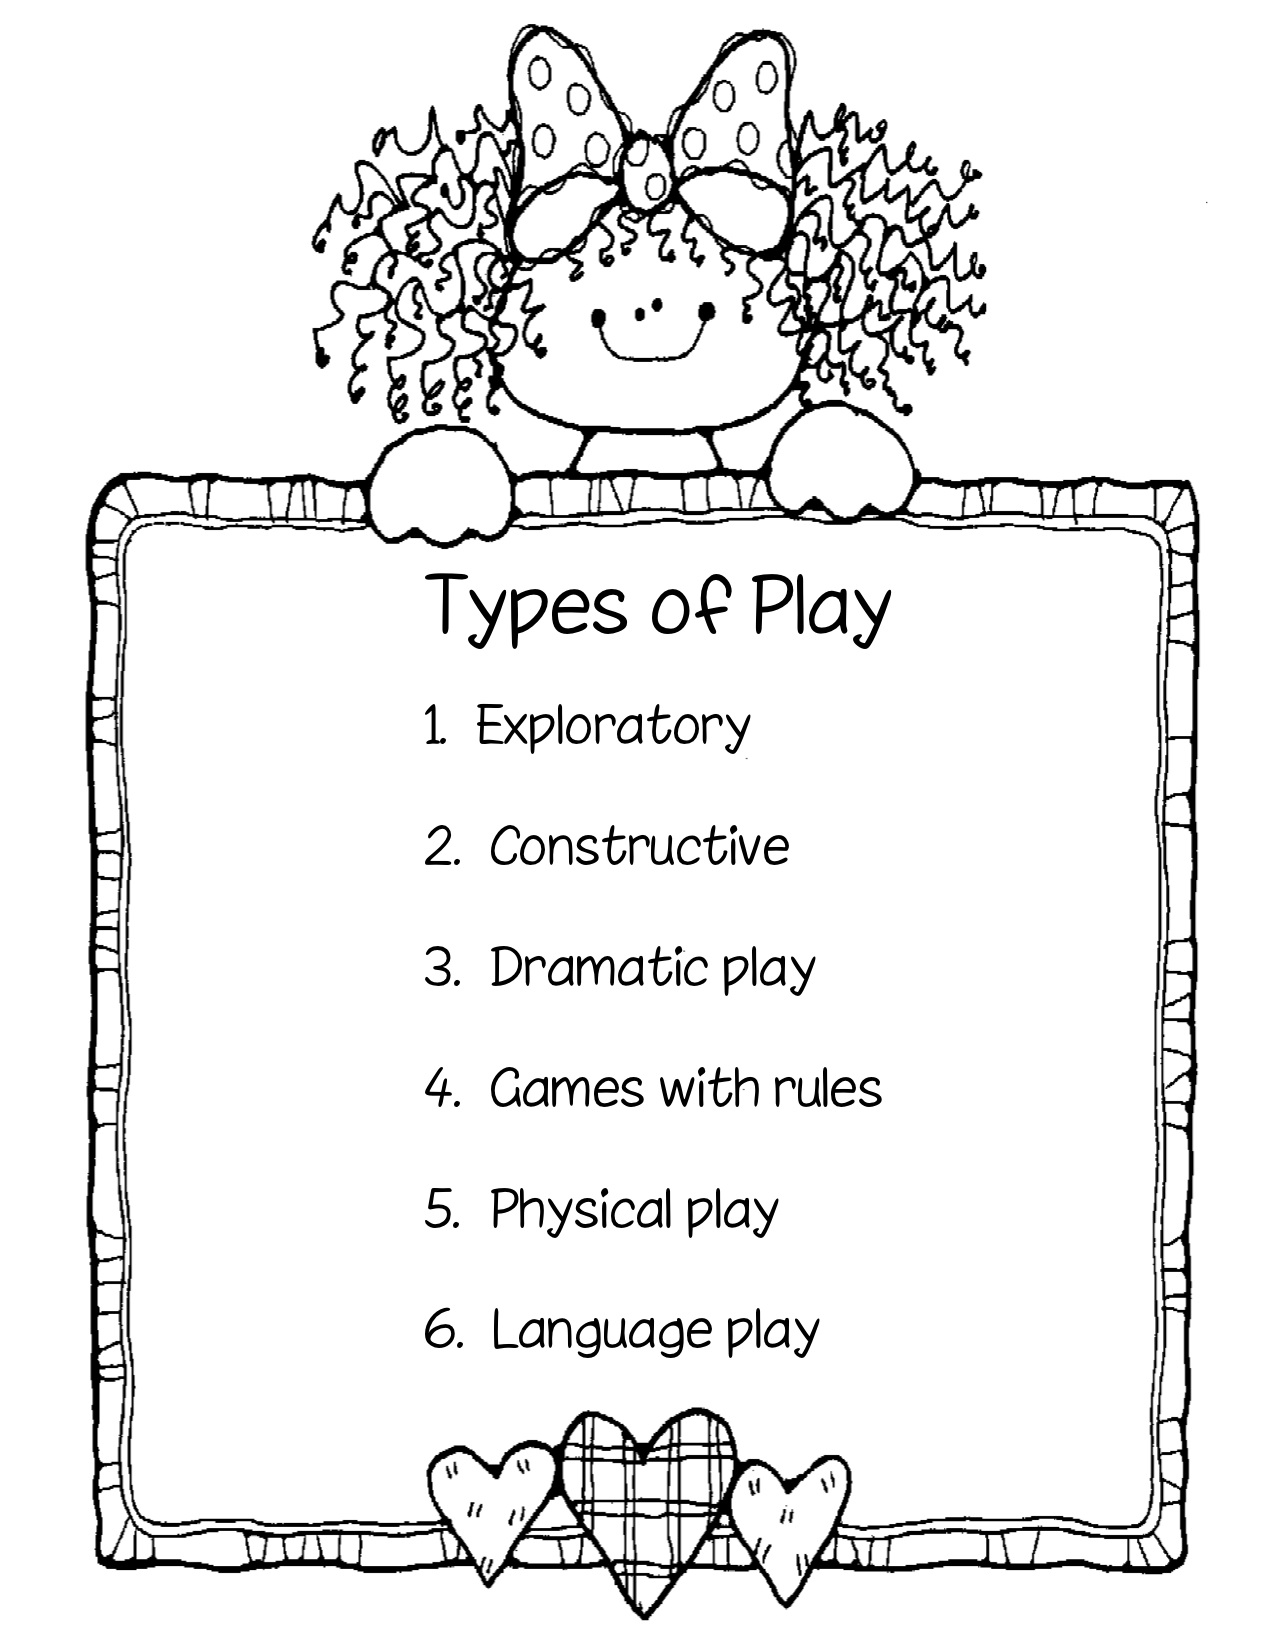 Where can i find information about types of childrens play?